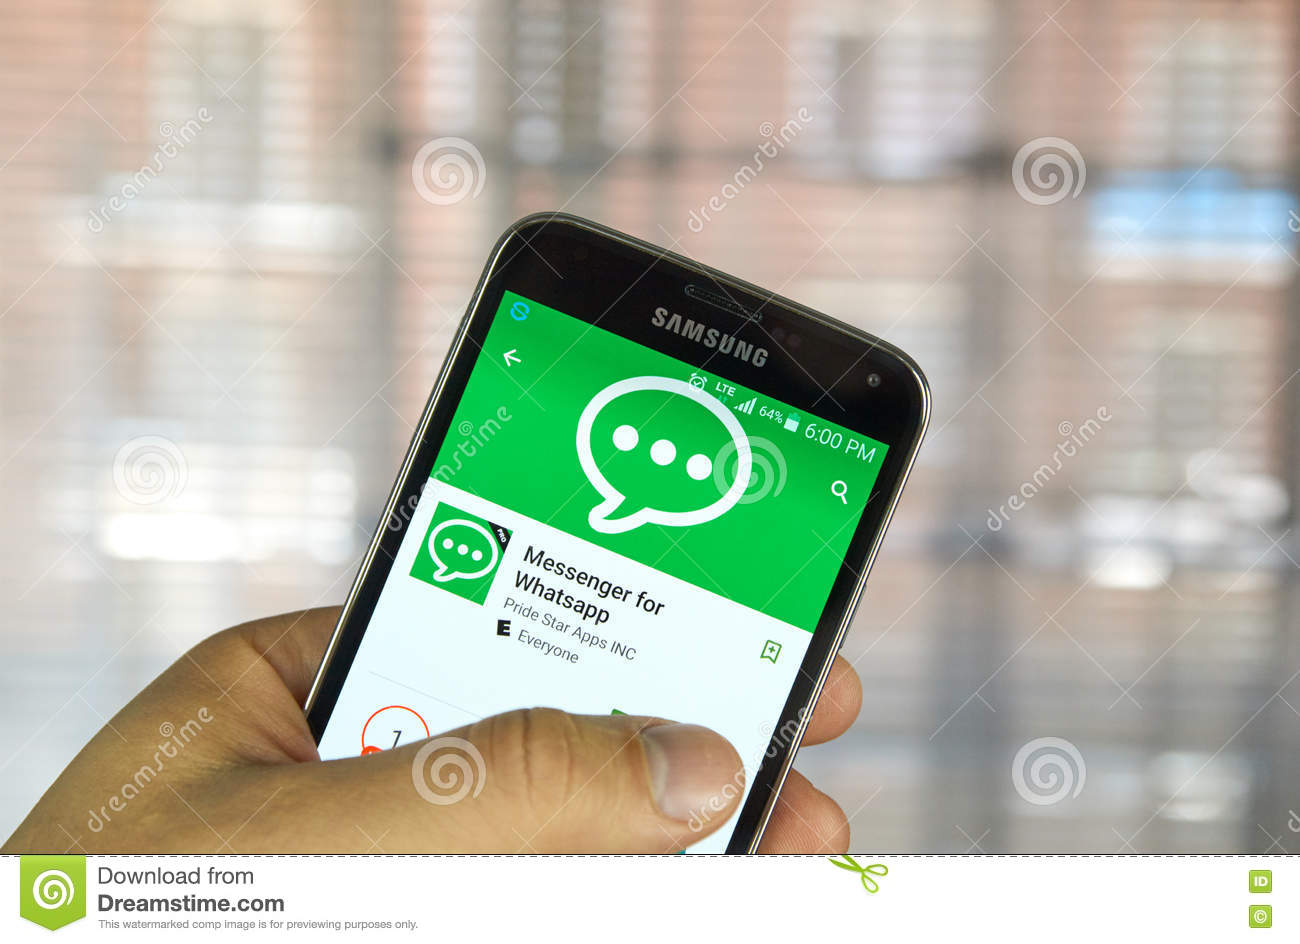 whatsapp app free download for android mobile phone